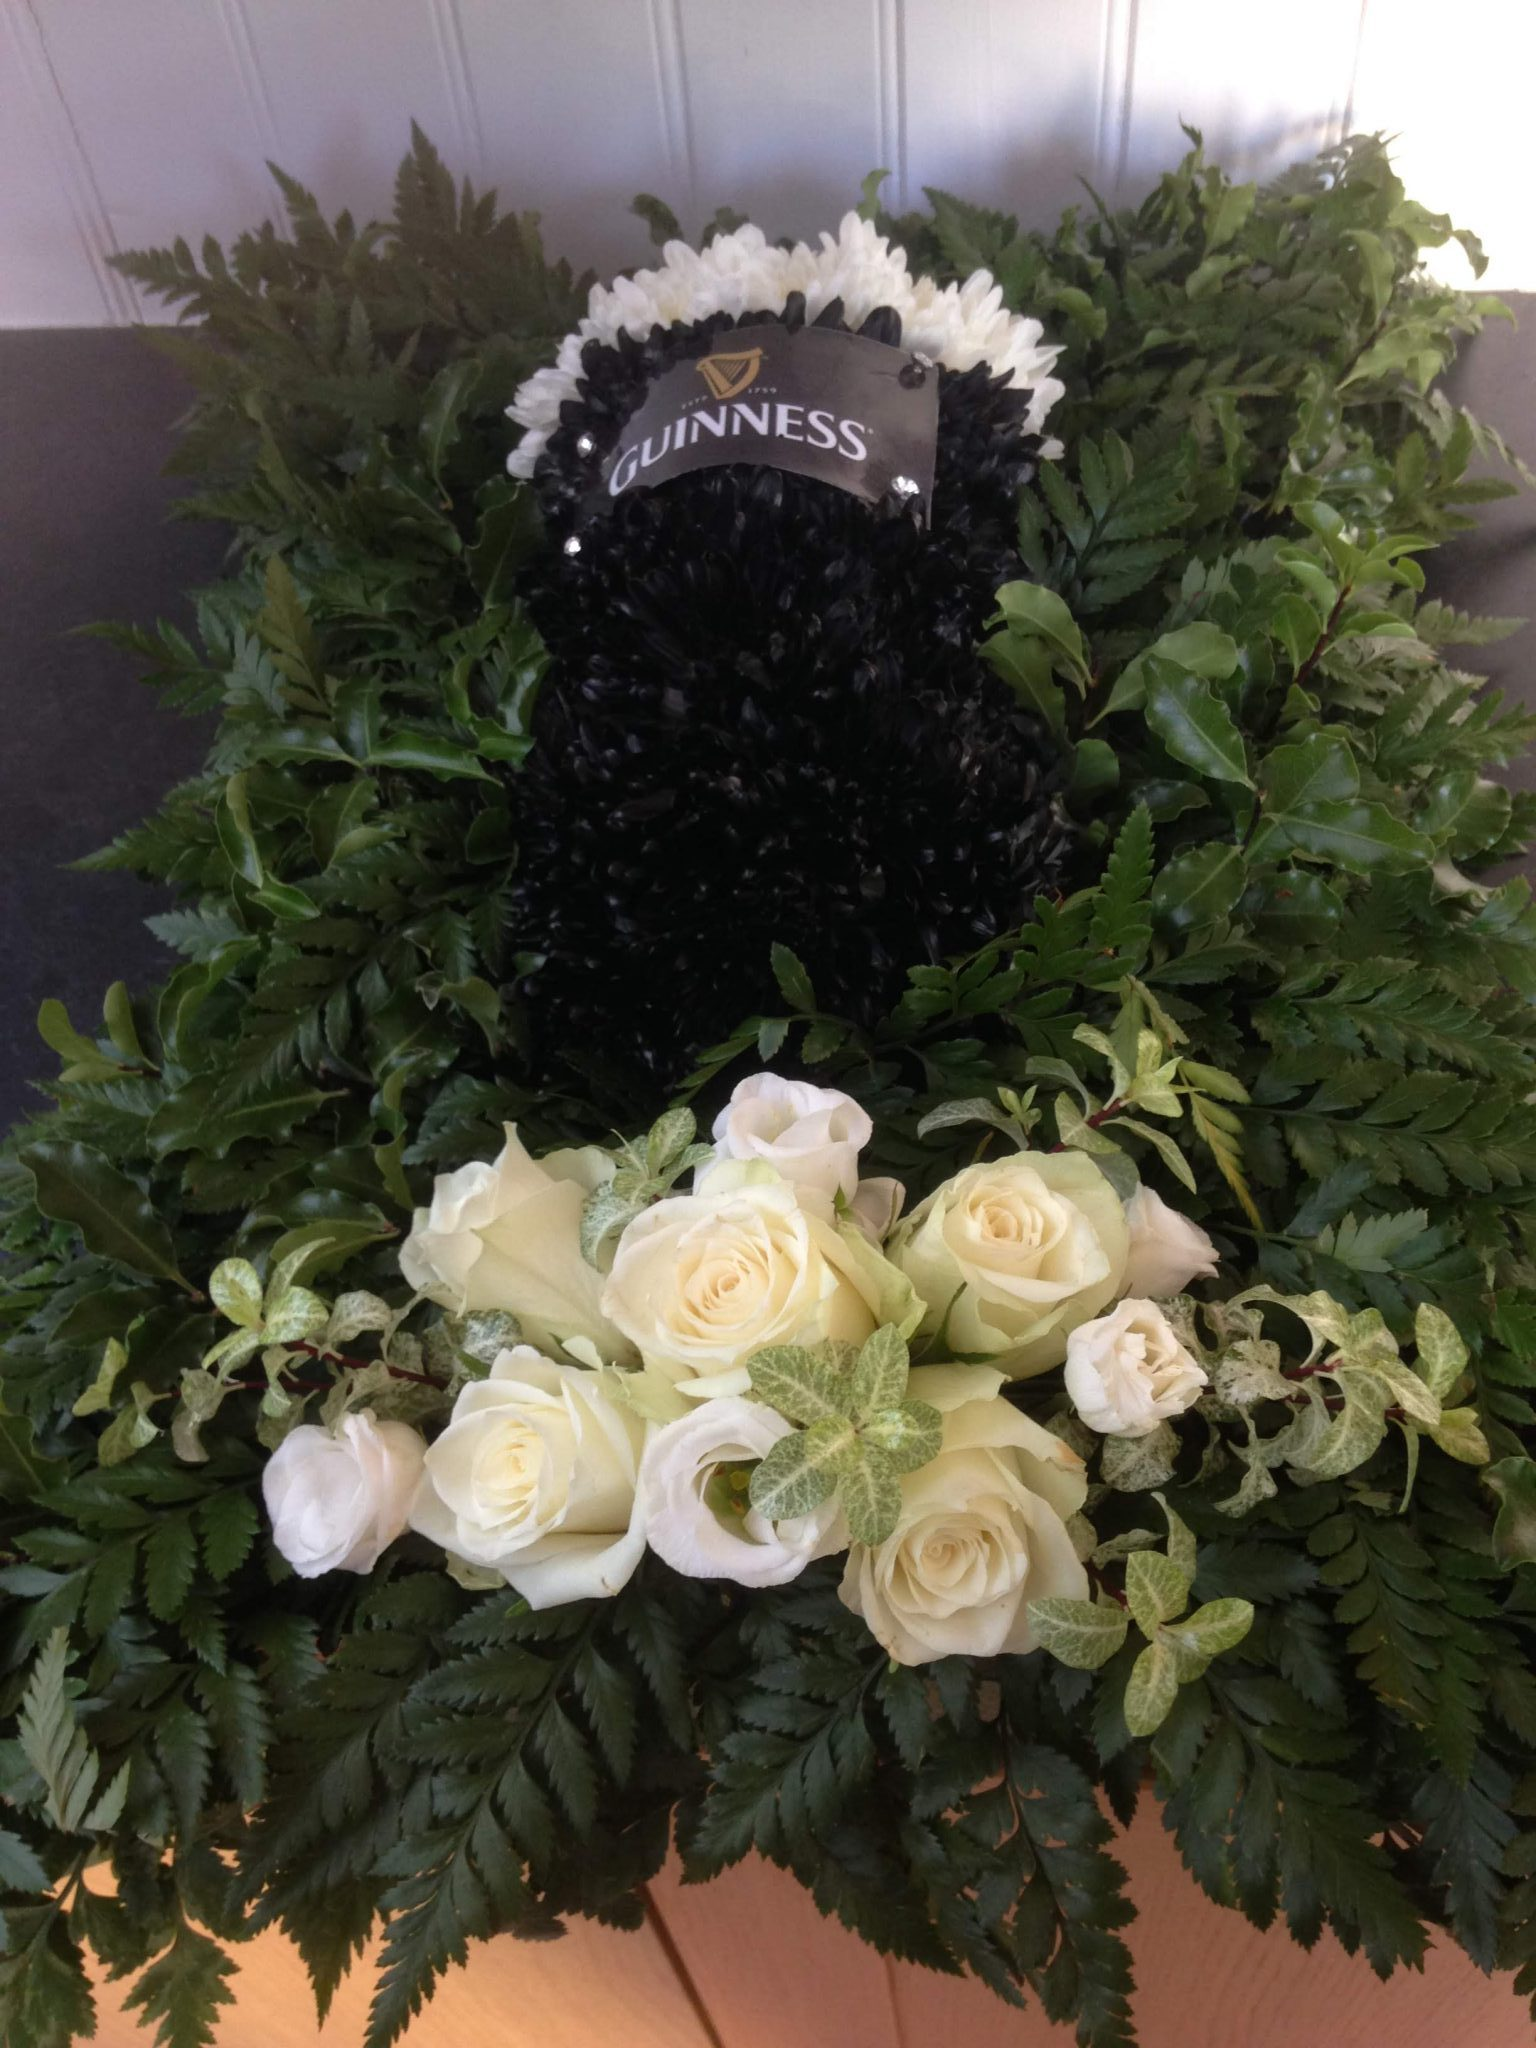 Guiness Tribute